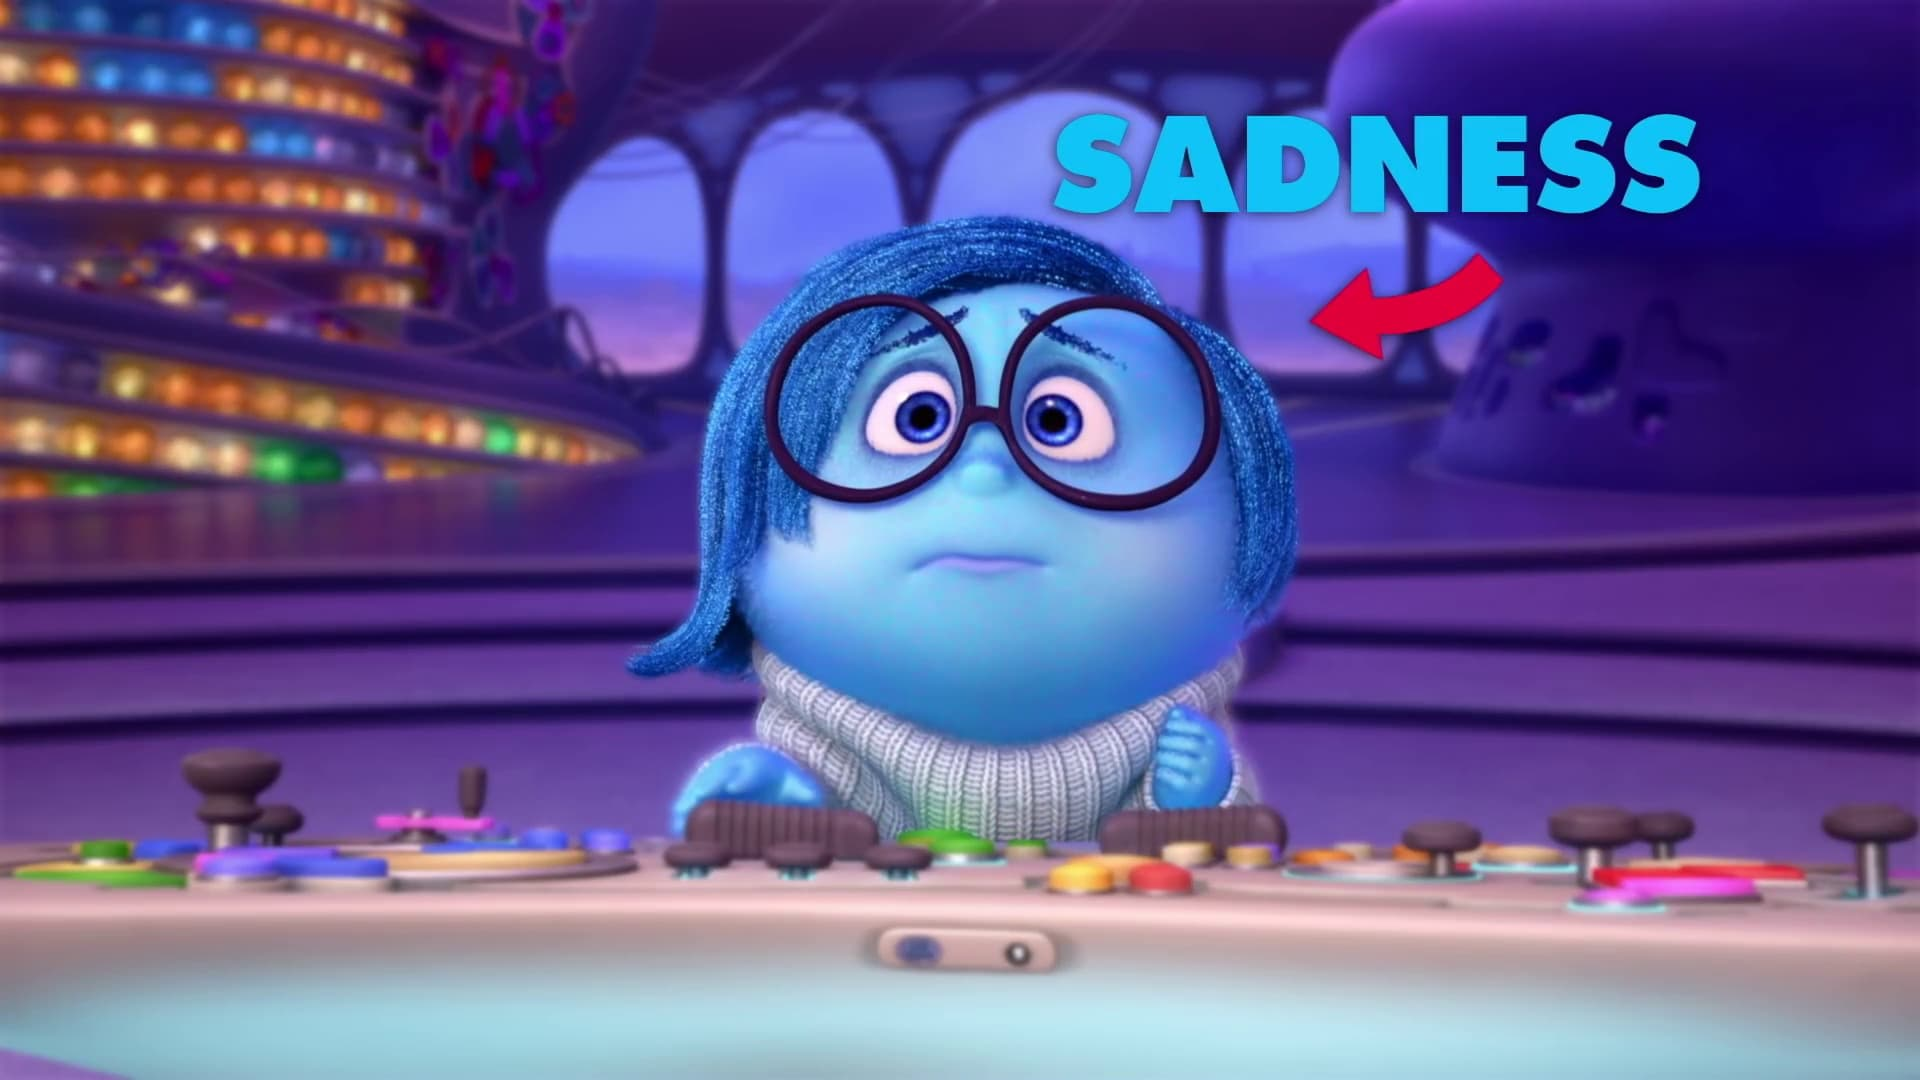 17+ Inside Out Sadness wallpapers HD Download